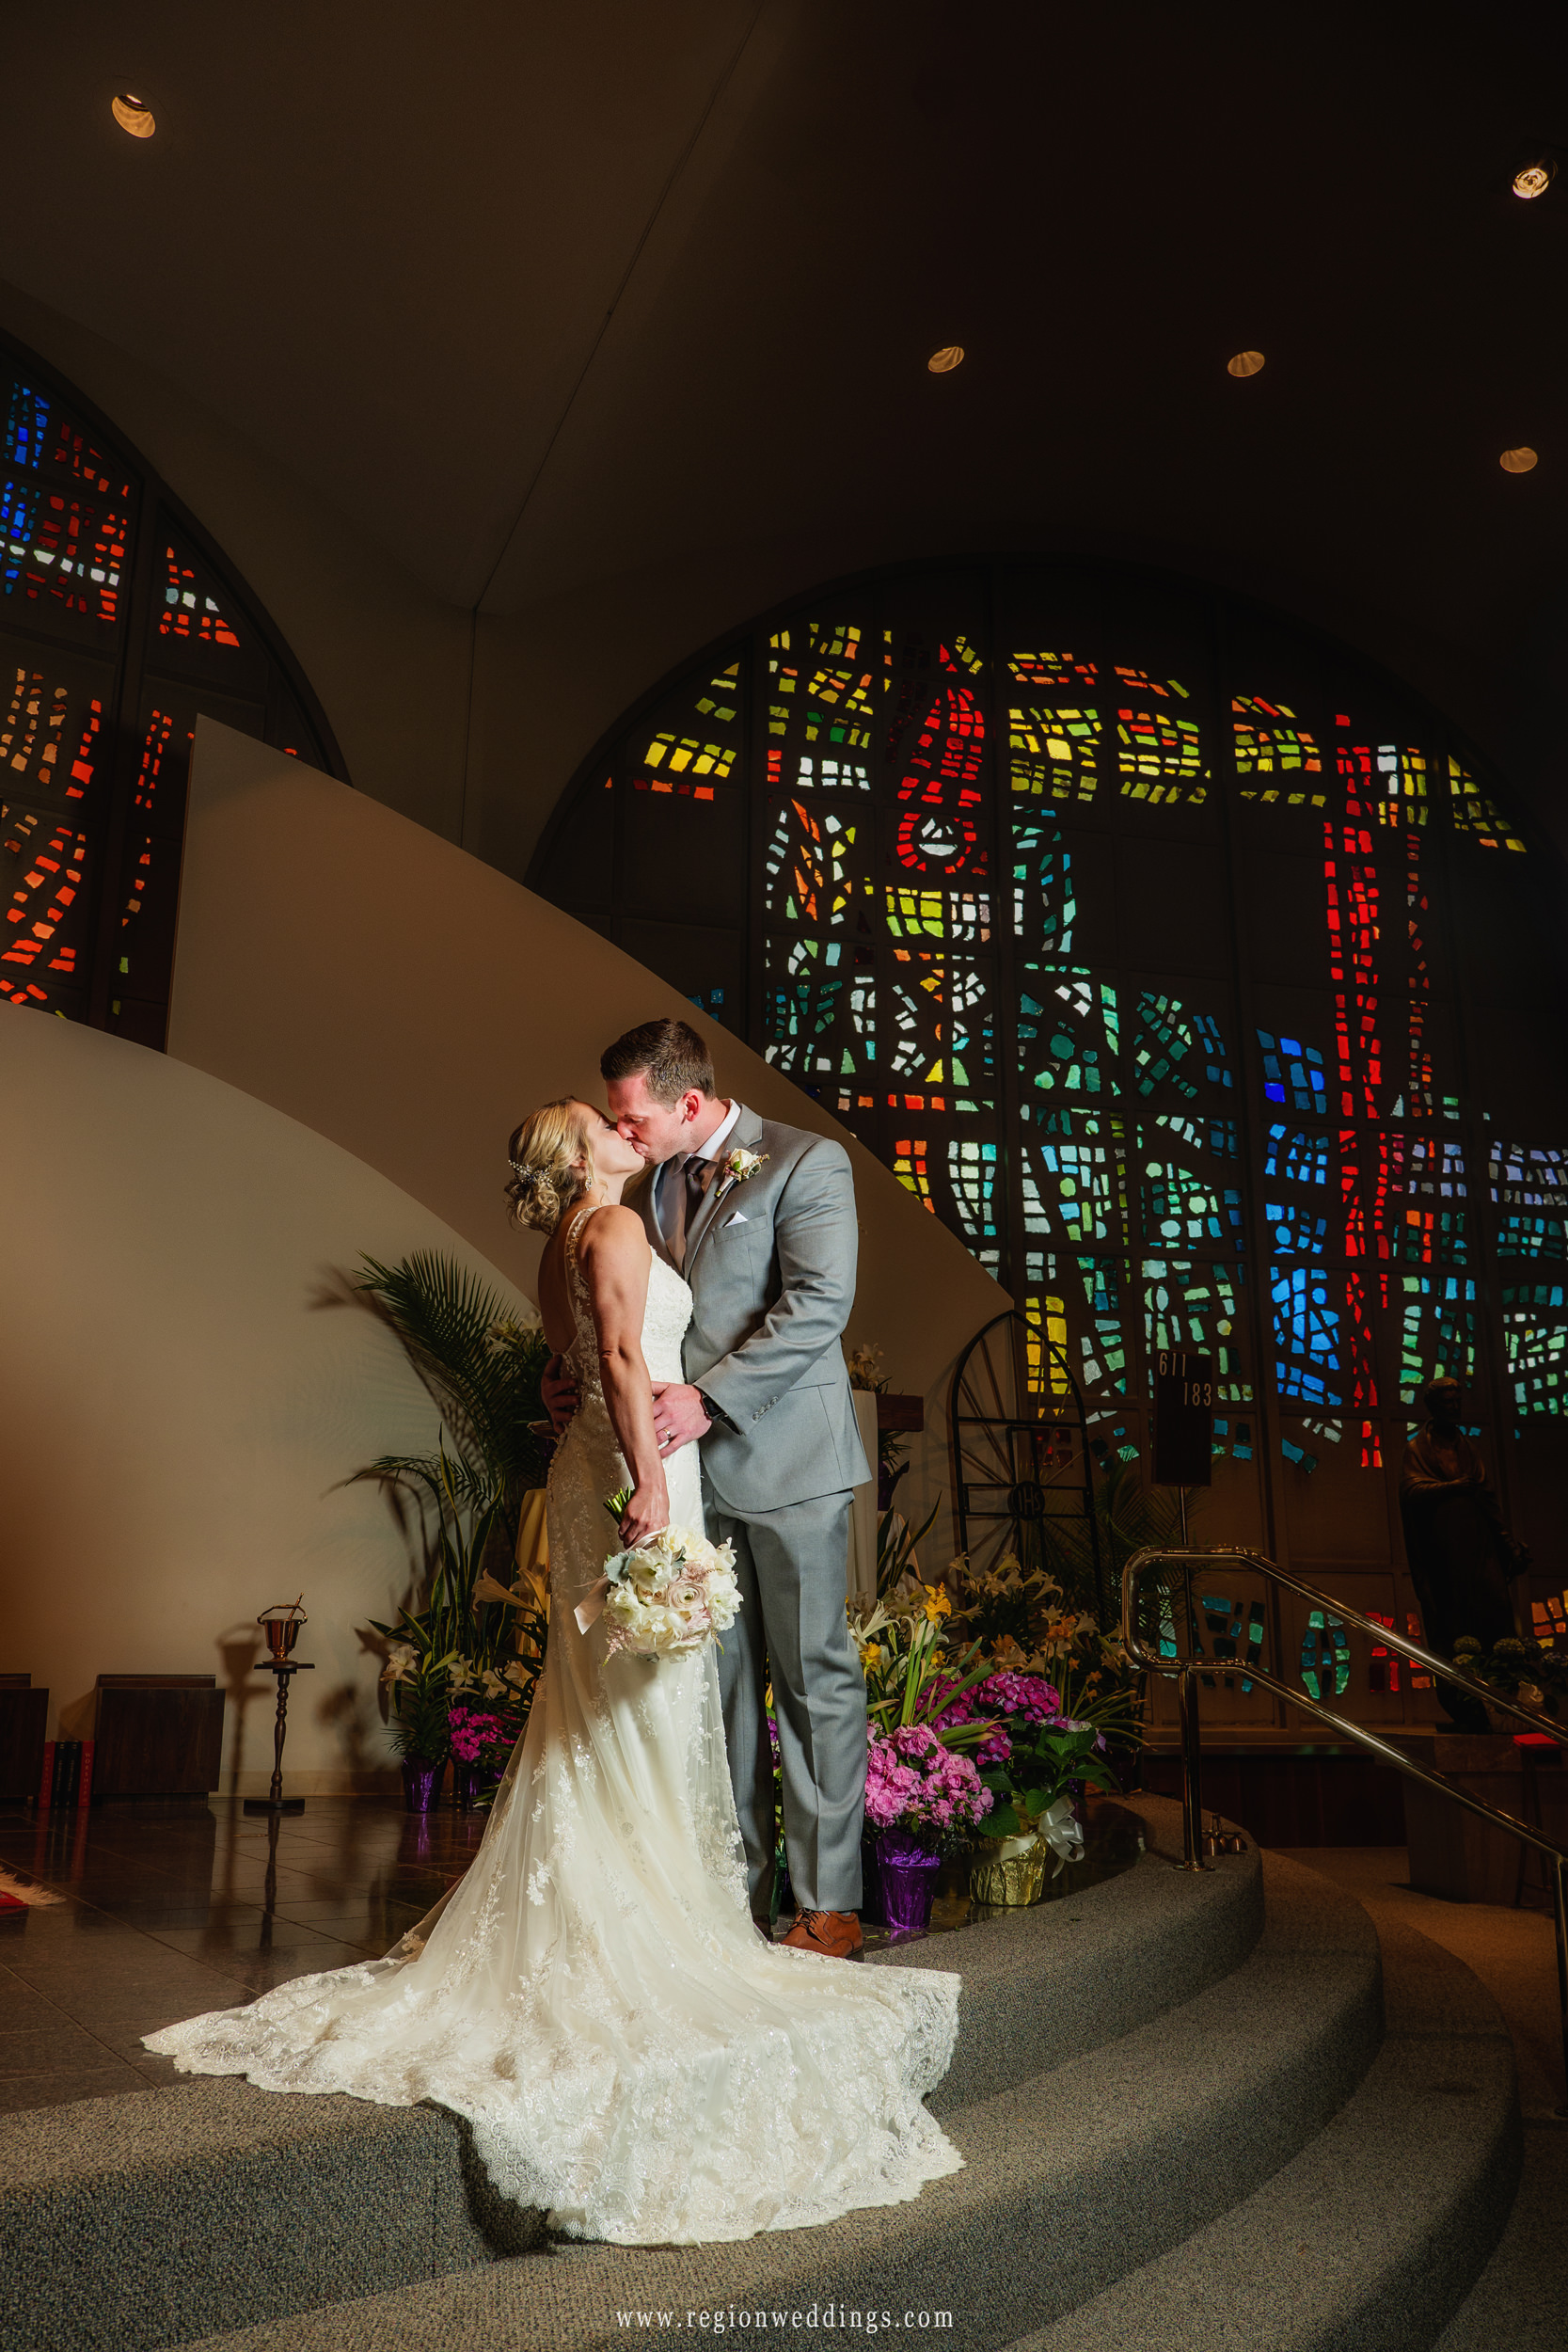 Bride and groom kiss on the altar at Saint Paul Catholic Church in Valparaiso, Indiana.